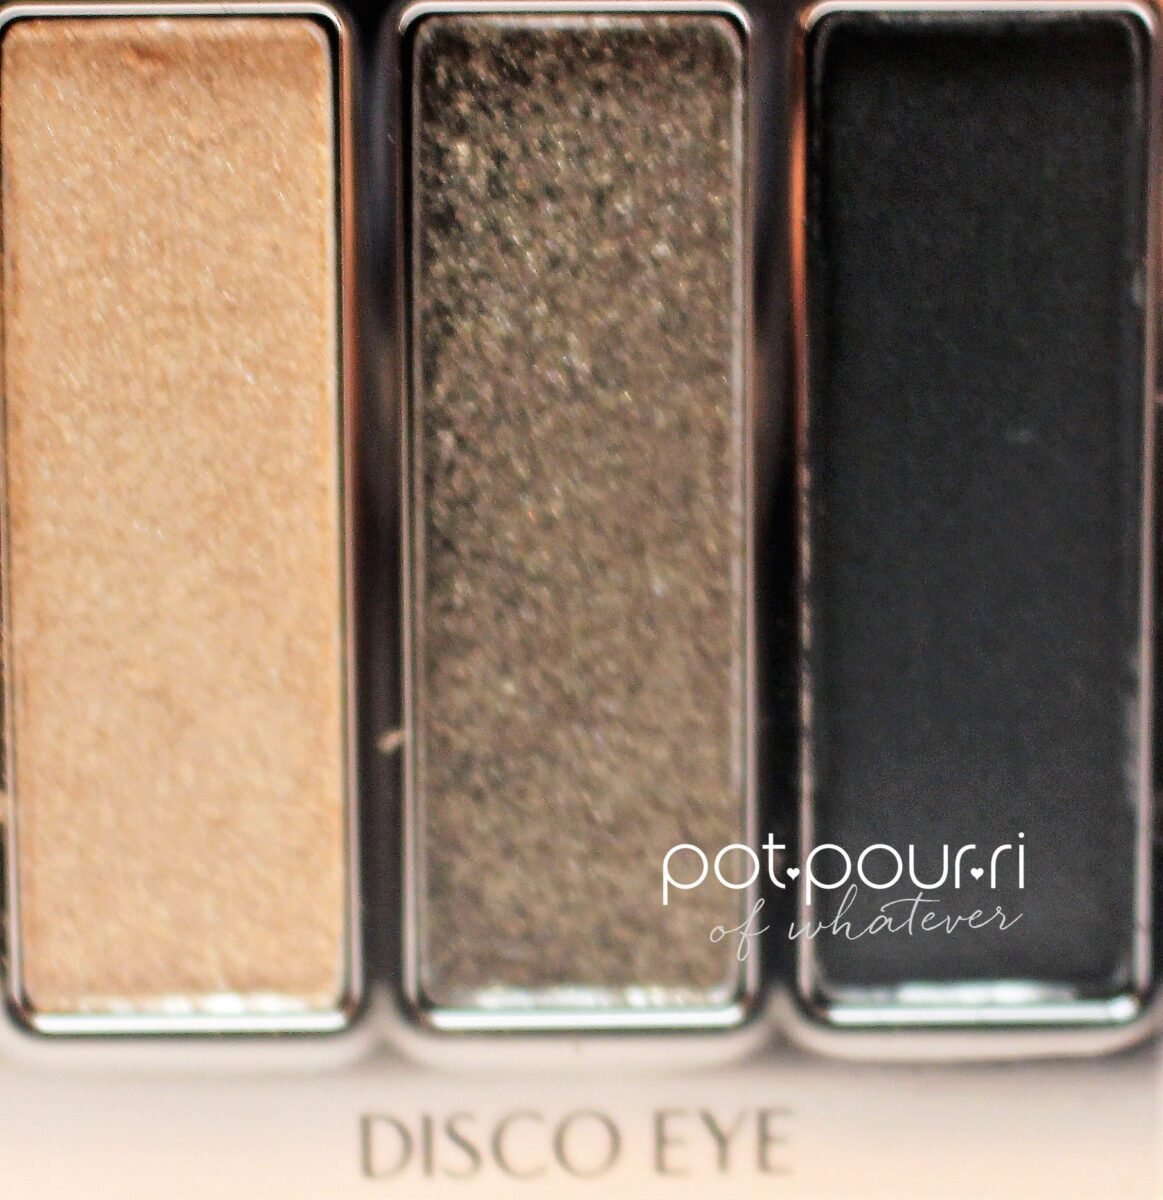 Disco Look Shadows